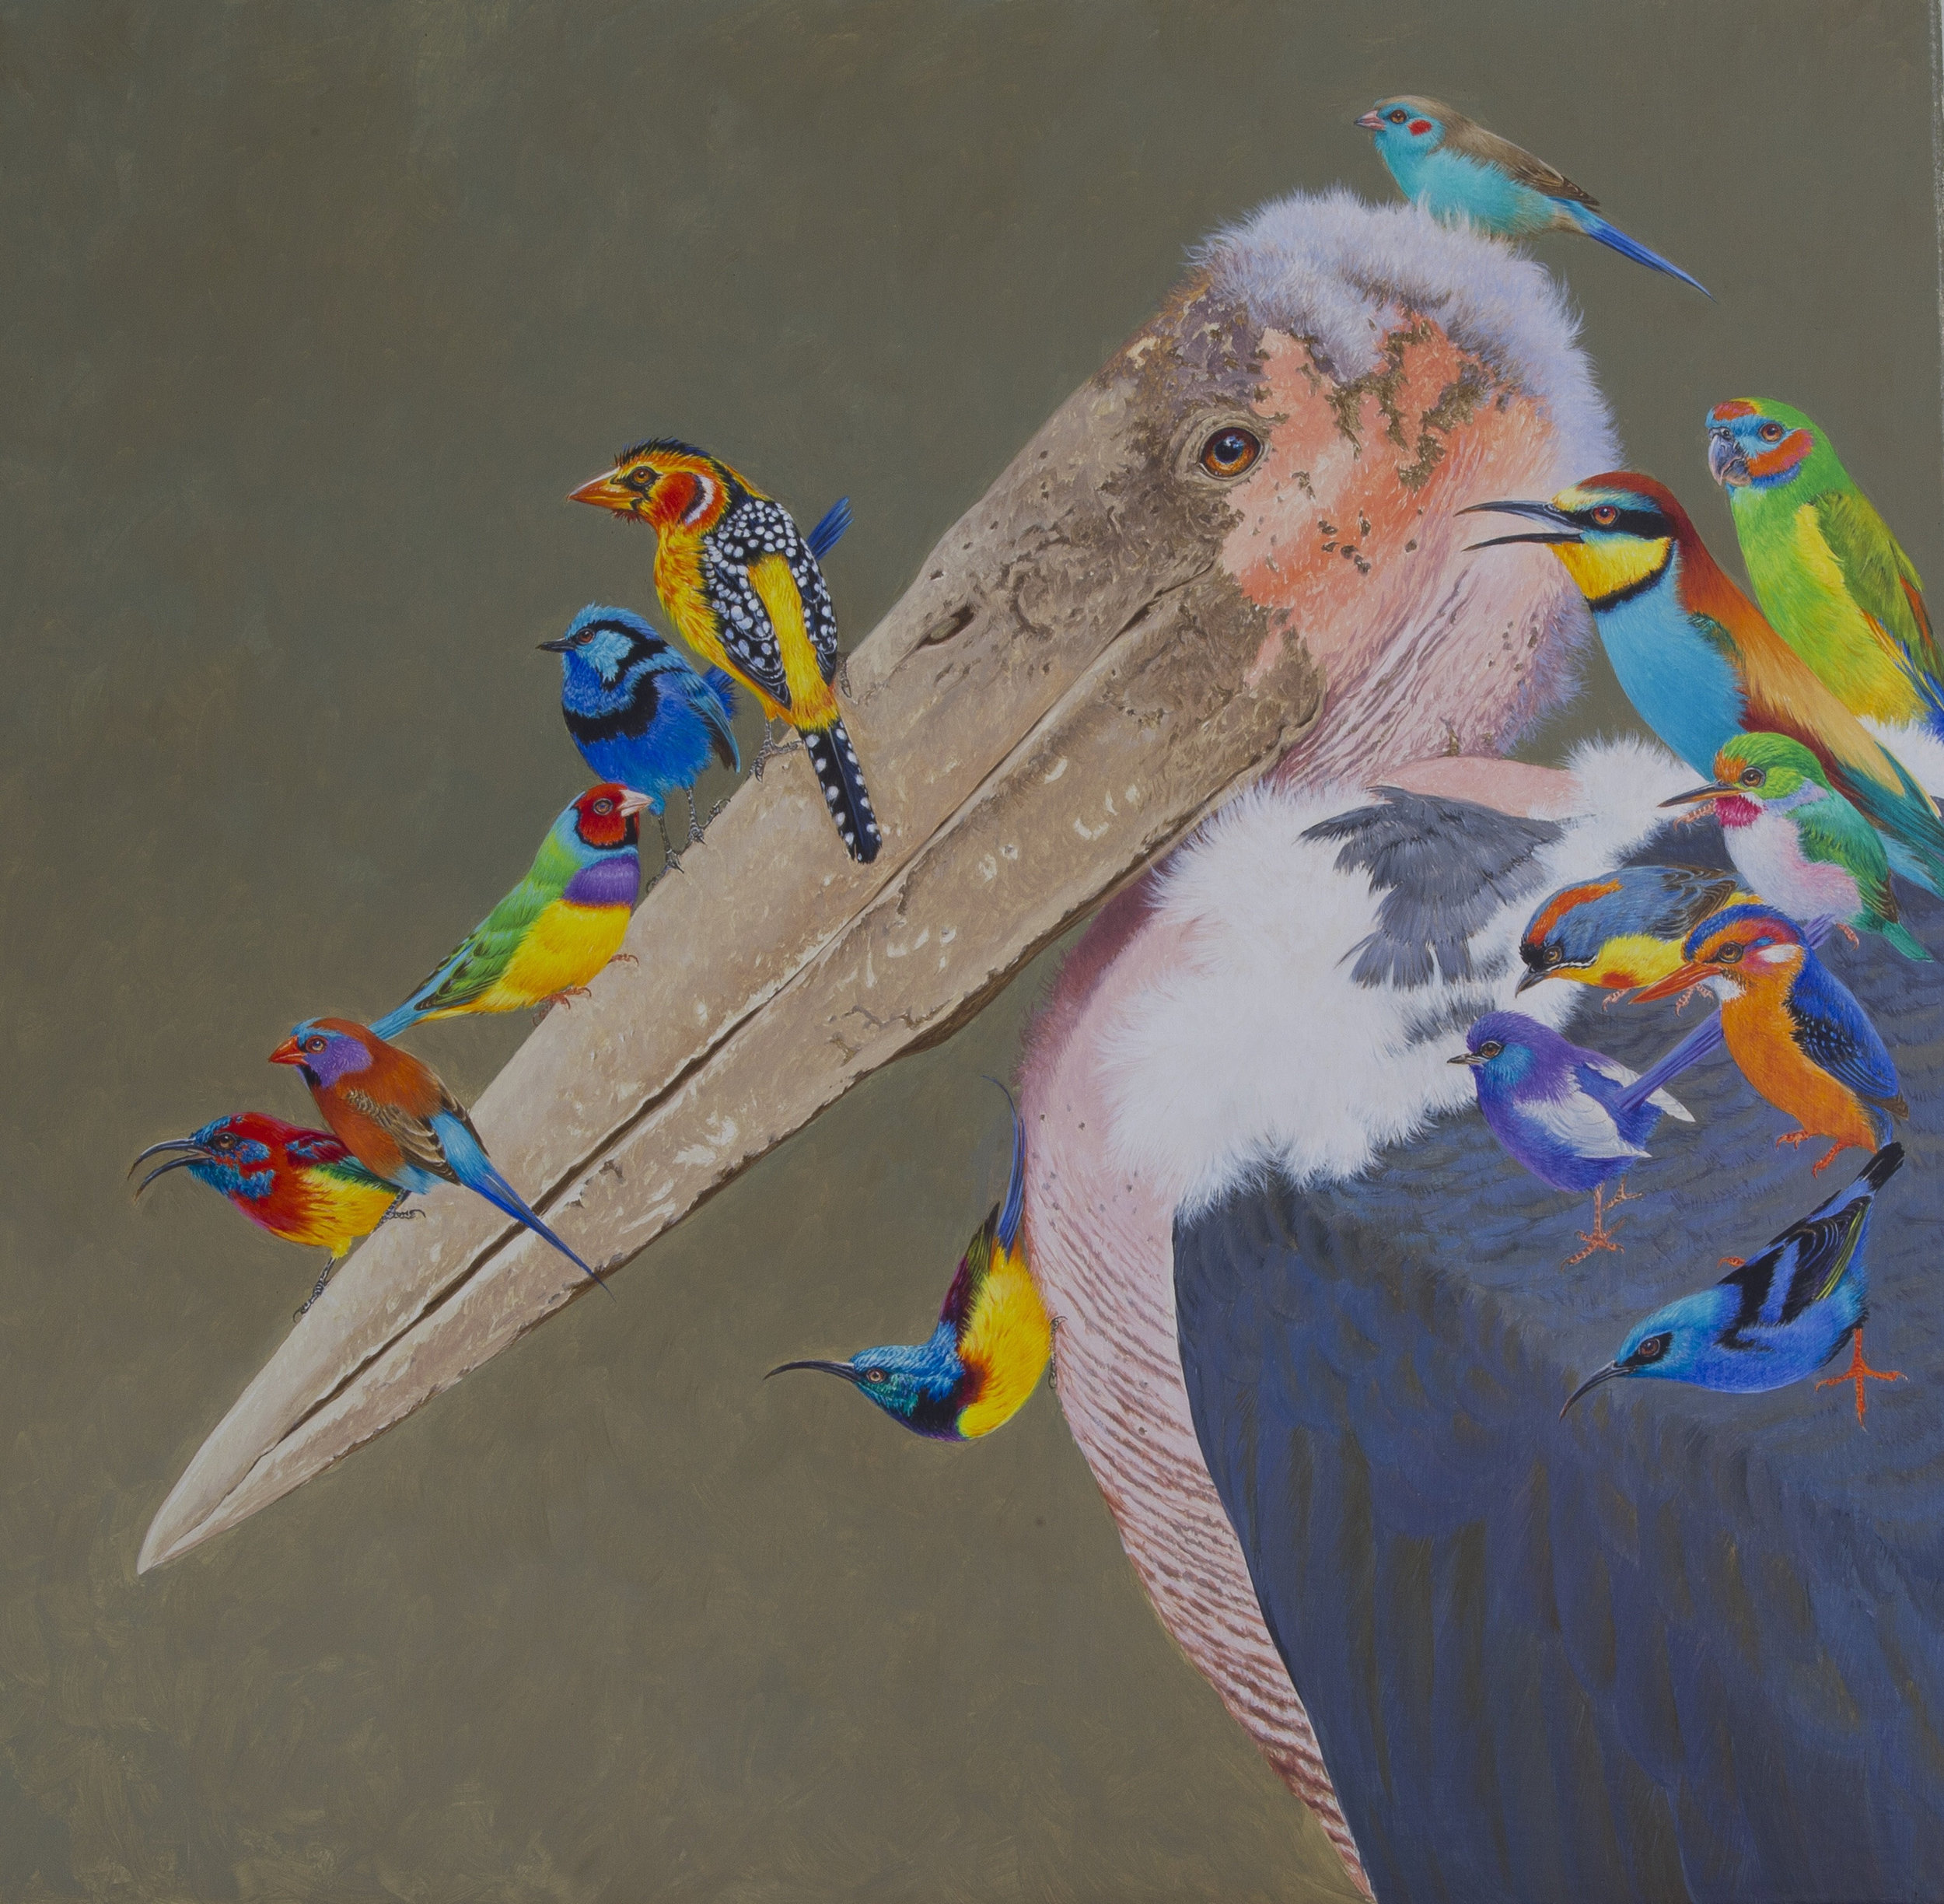 Aves Exoticae at Rountree Tryon Gallery